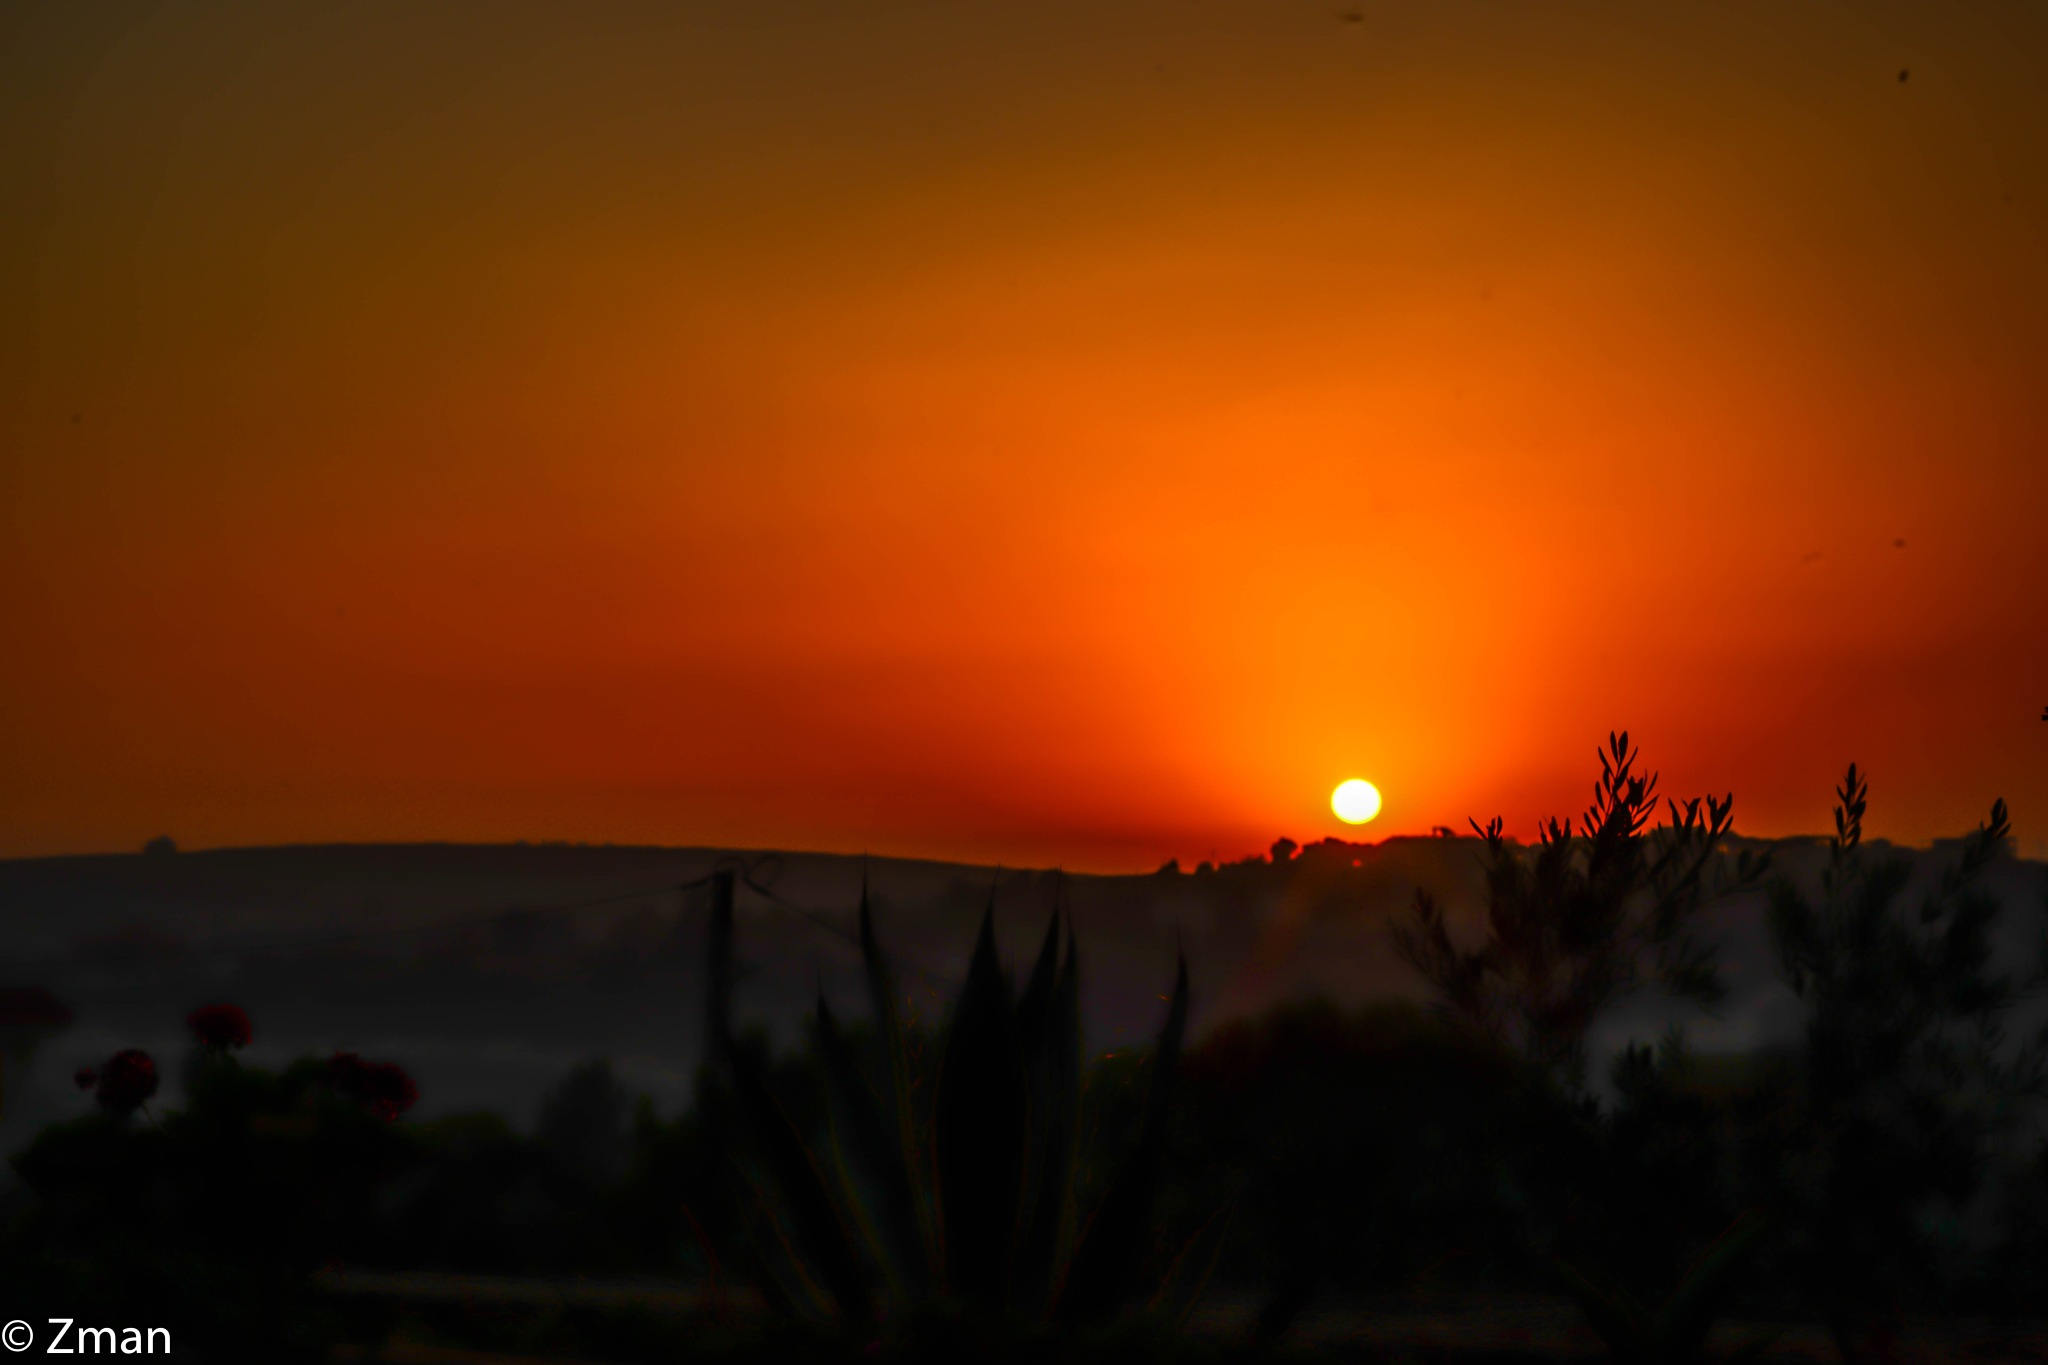 Sunset in a Very Hot Day by muhammad.nasser.963